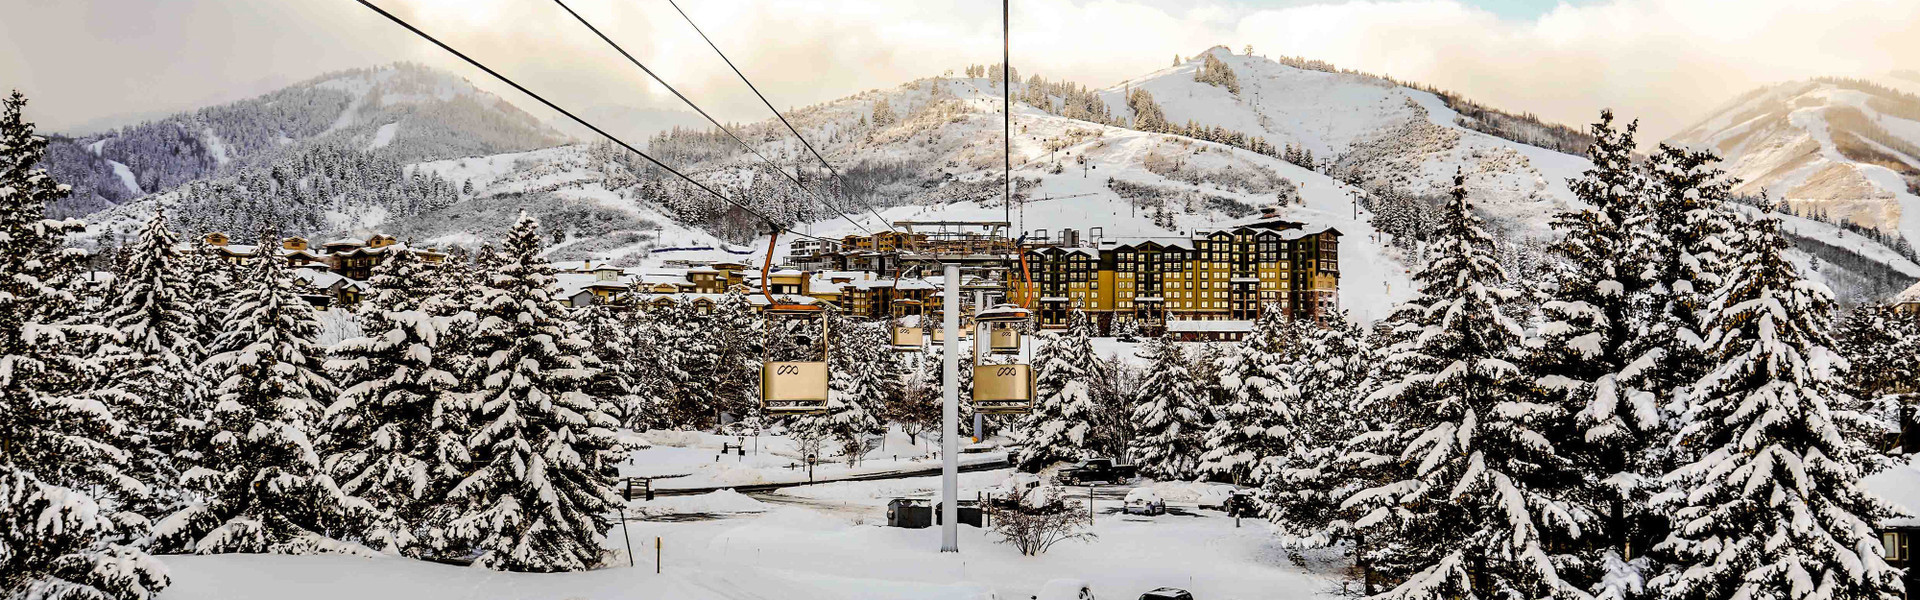 Best Things To Do In Park City Utah In Winter | Our Park City Hotel